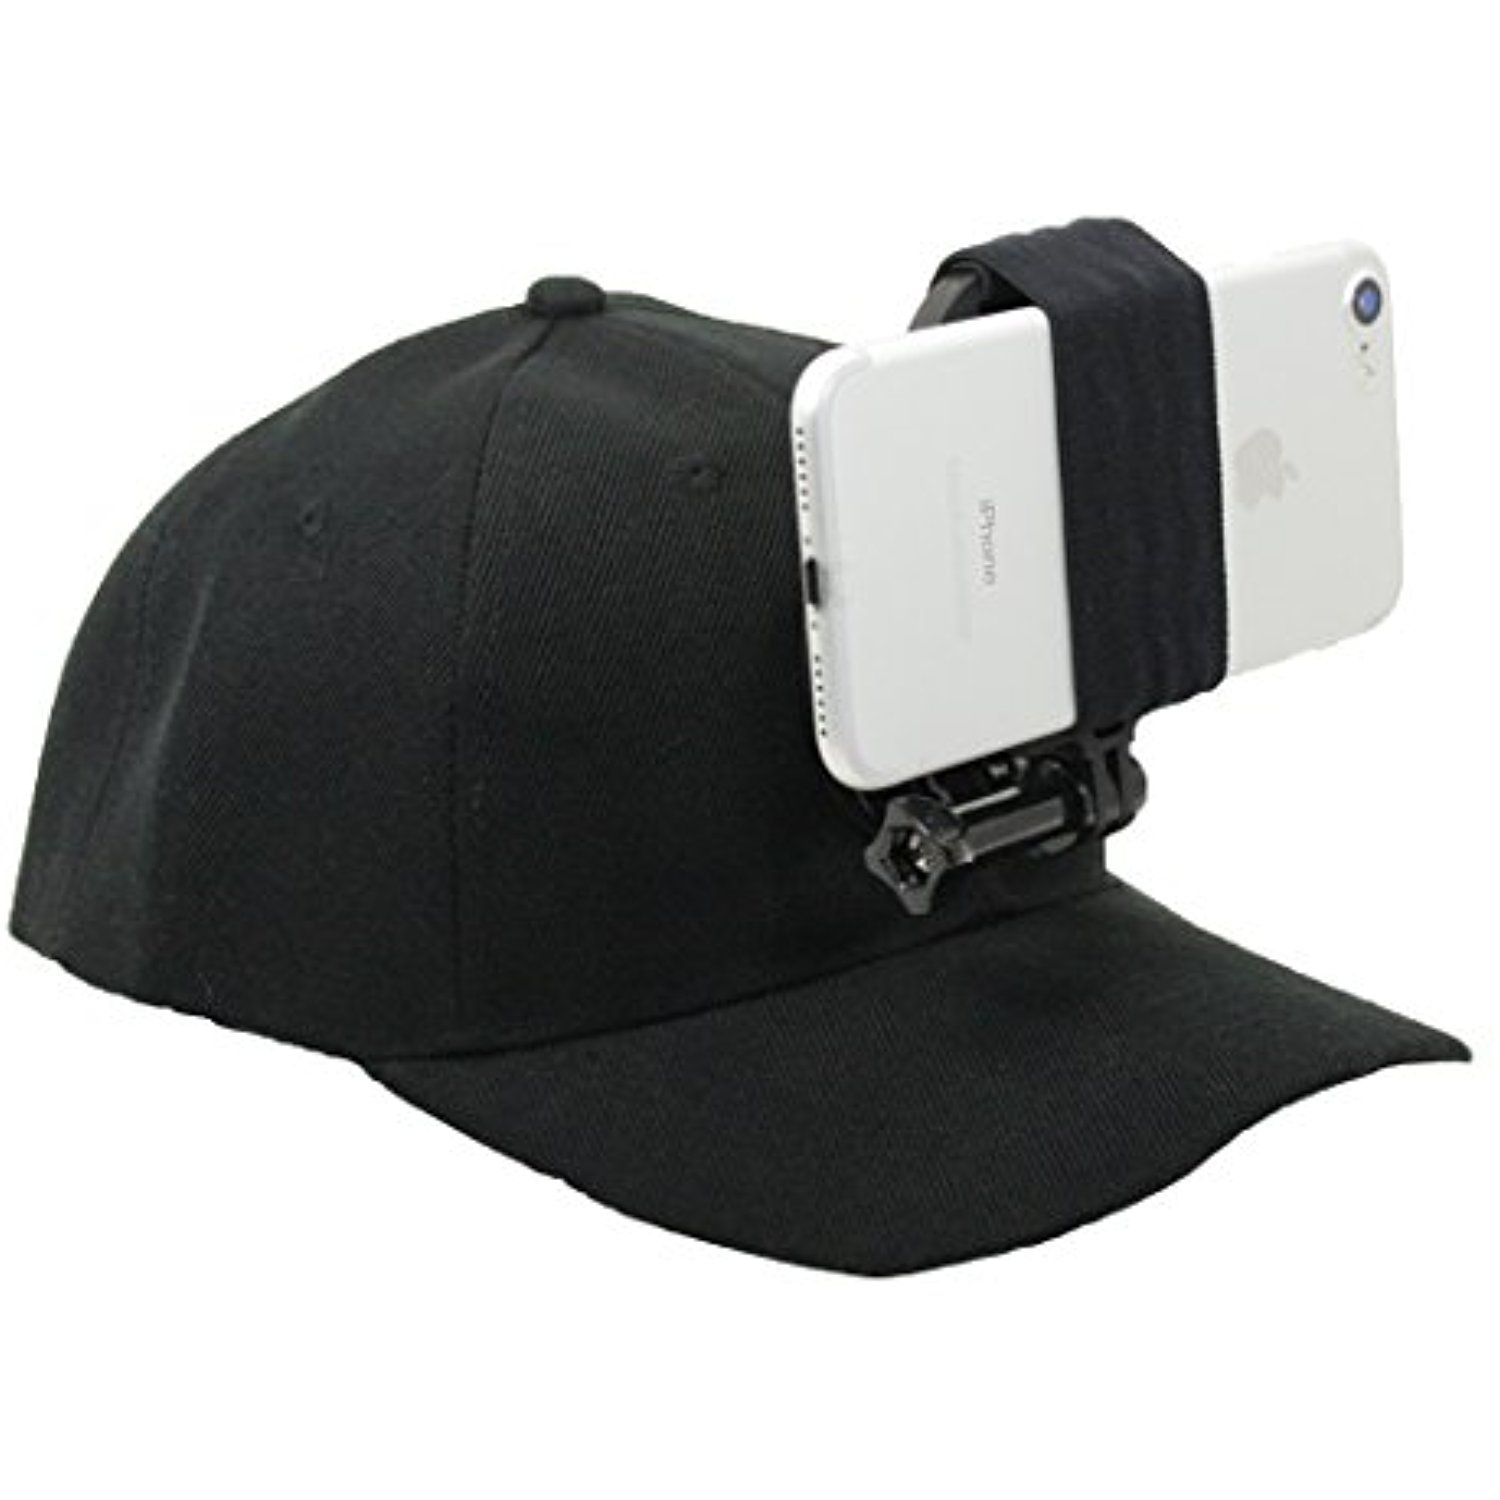 Action Hat Gopro Style Head Mount For Your Smartphone By Action Mount Operable With Any Smartphone Quick Release Sports Camera Wearable Quick Release Buckle